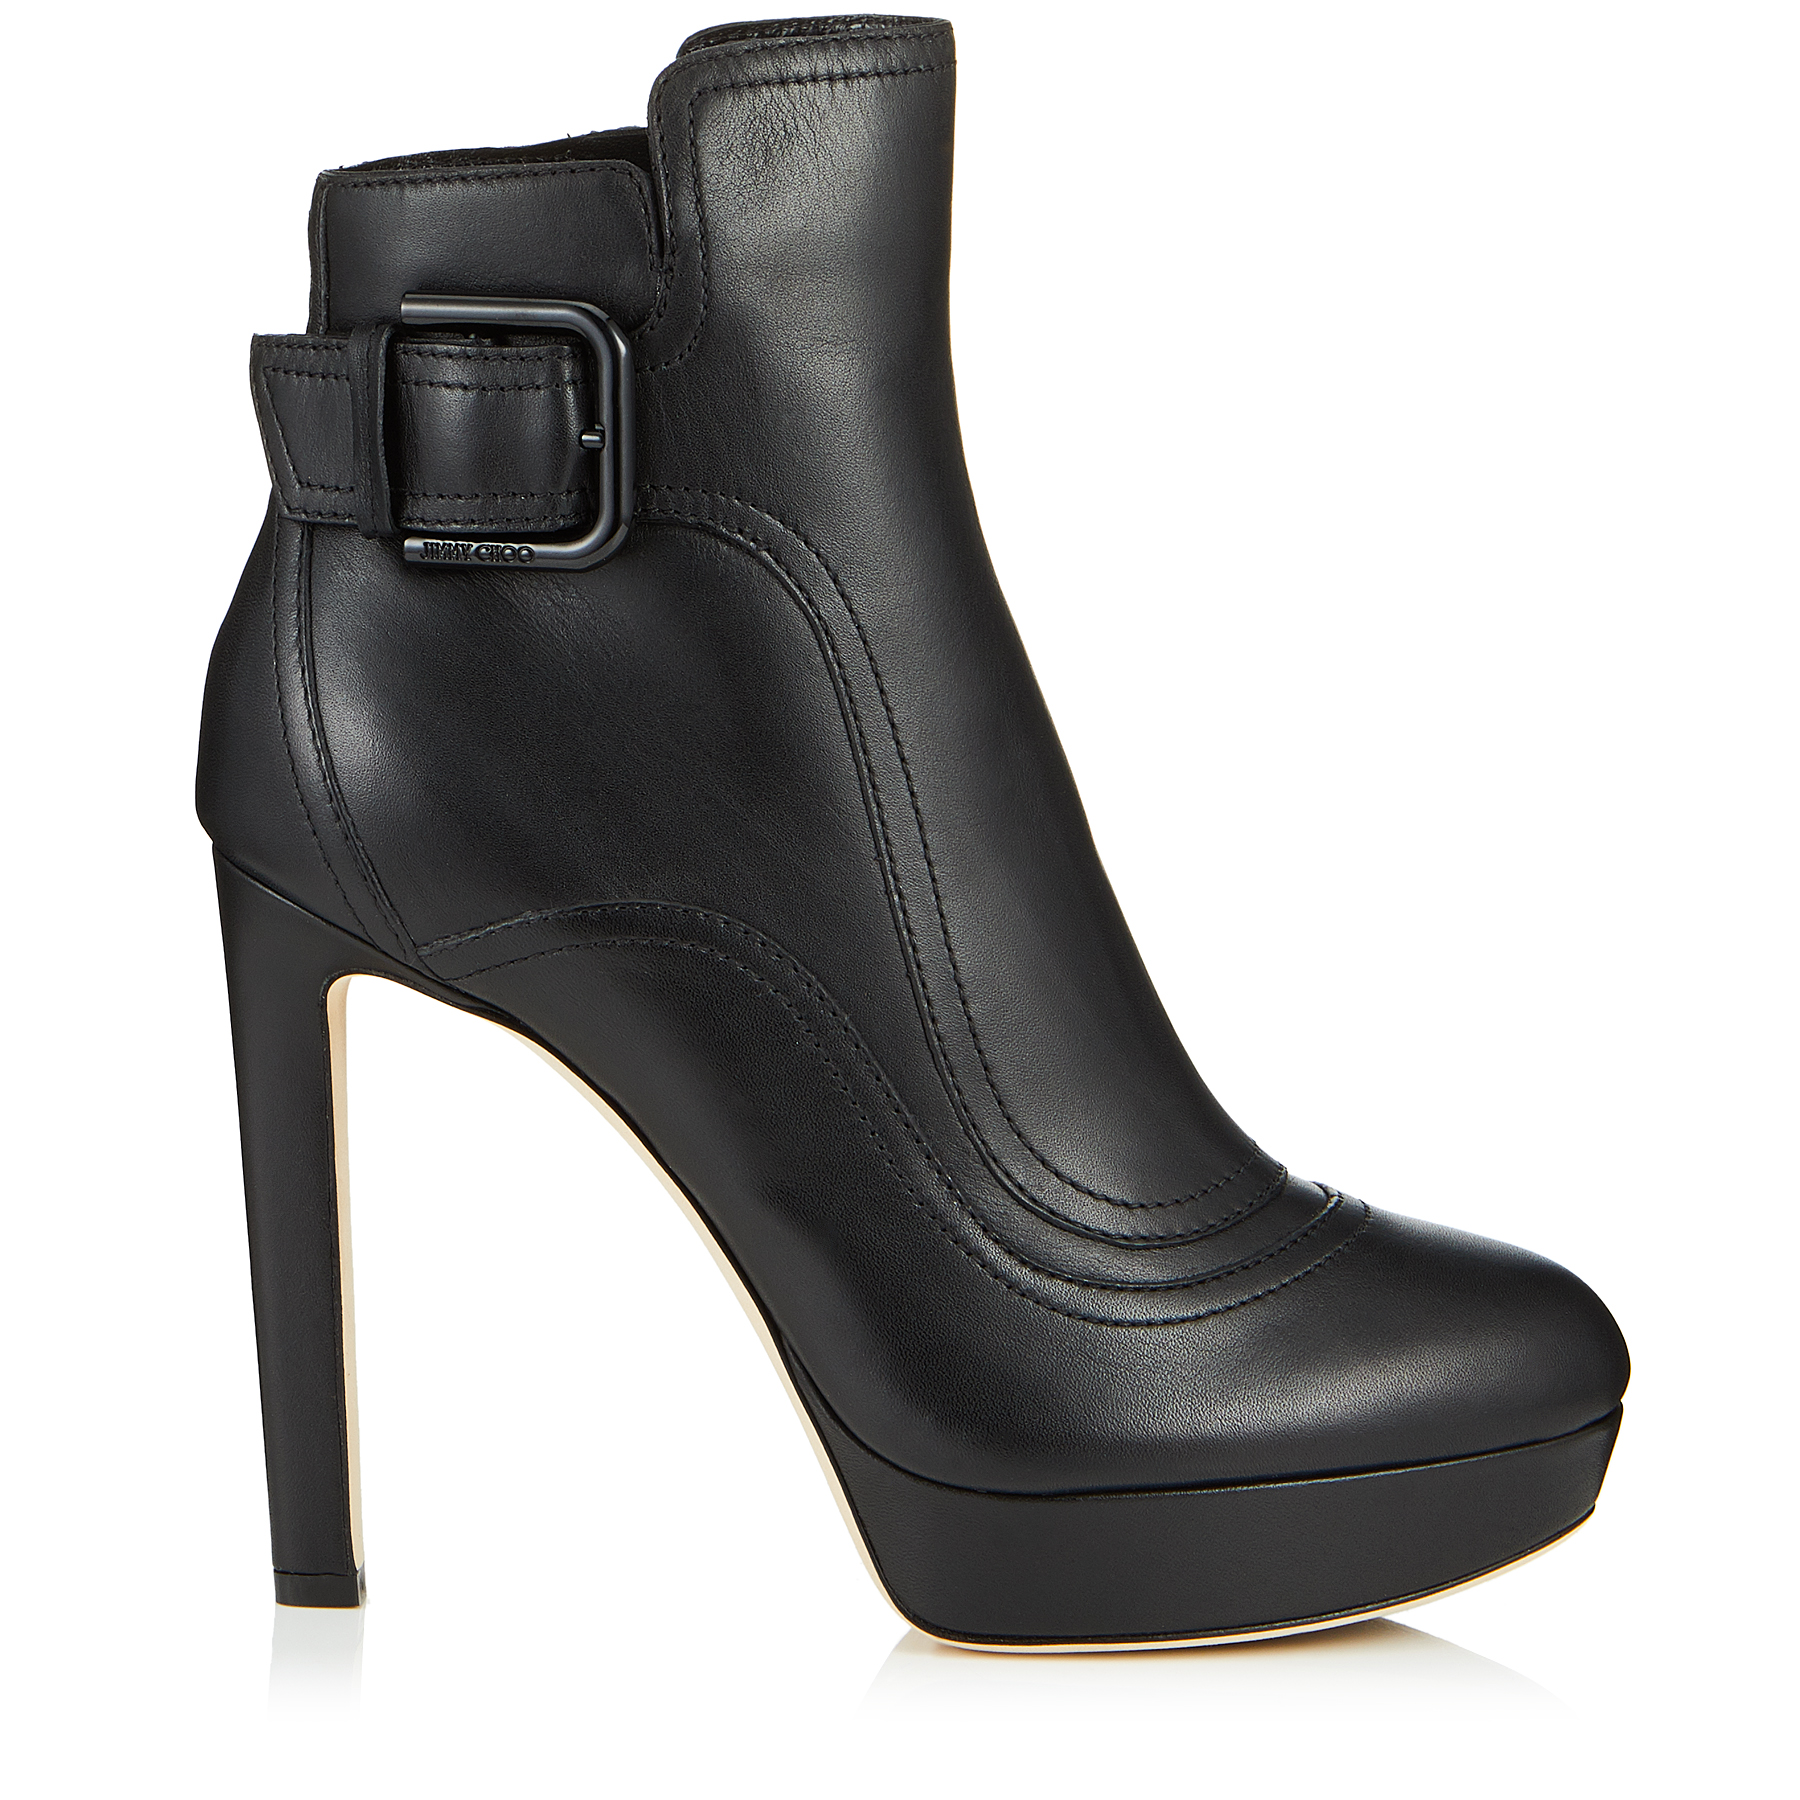 BRITNEY 115 Black Smooth Leather Platform Booties by Jimmy Choo